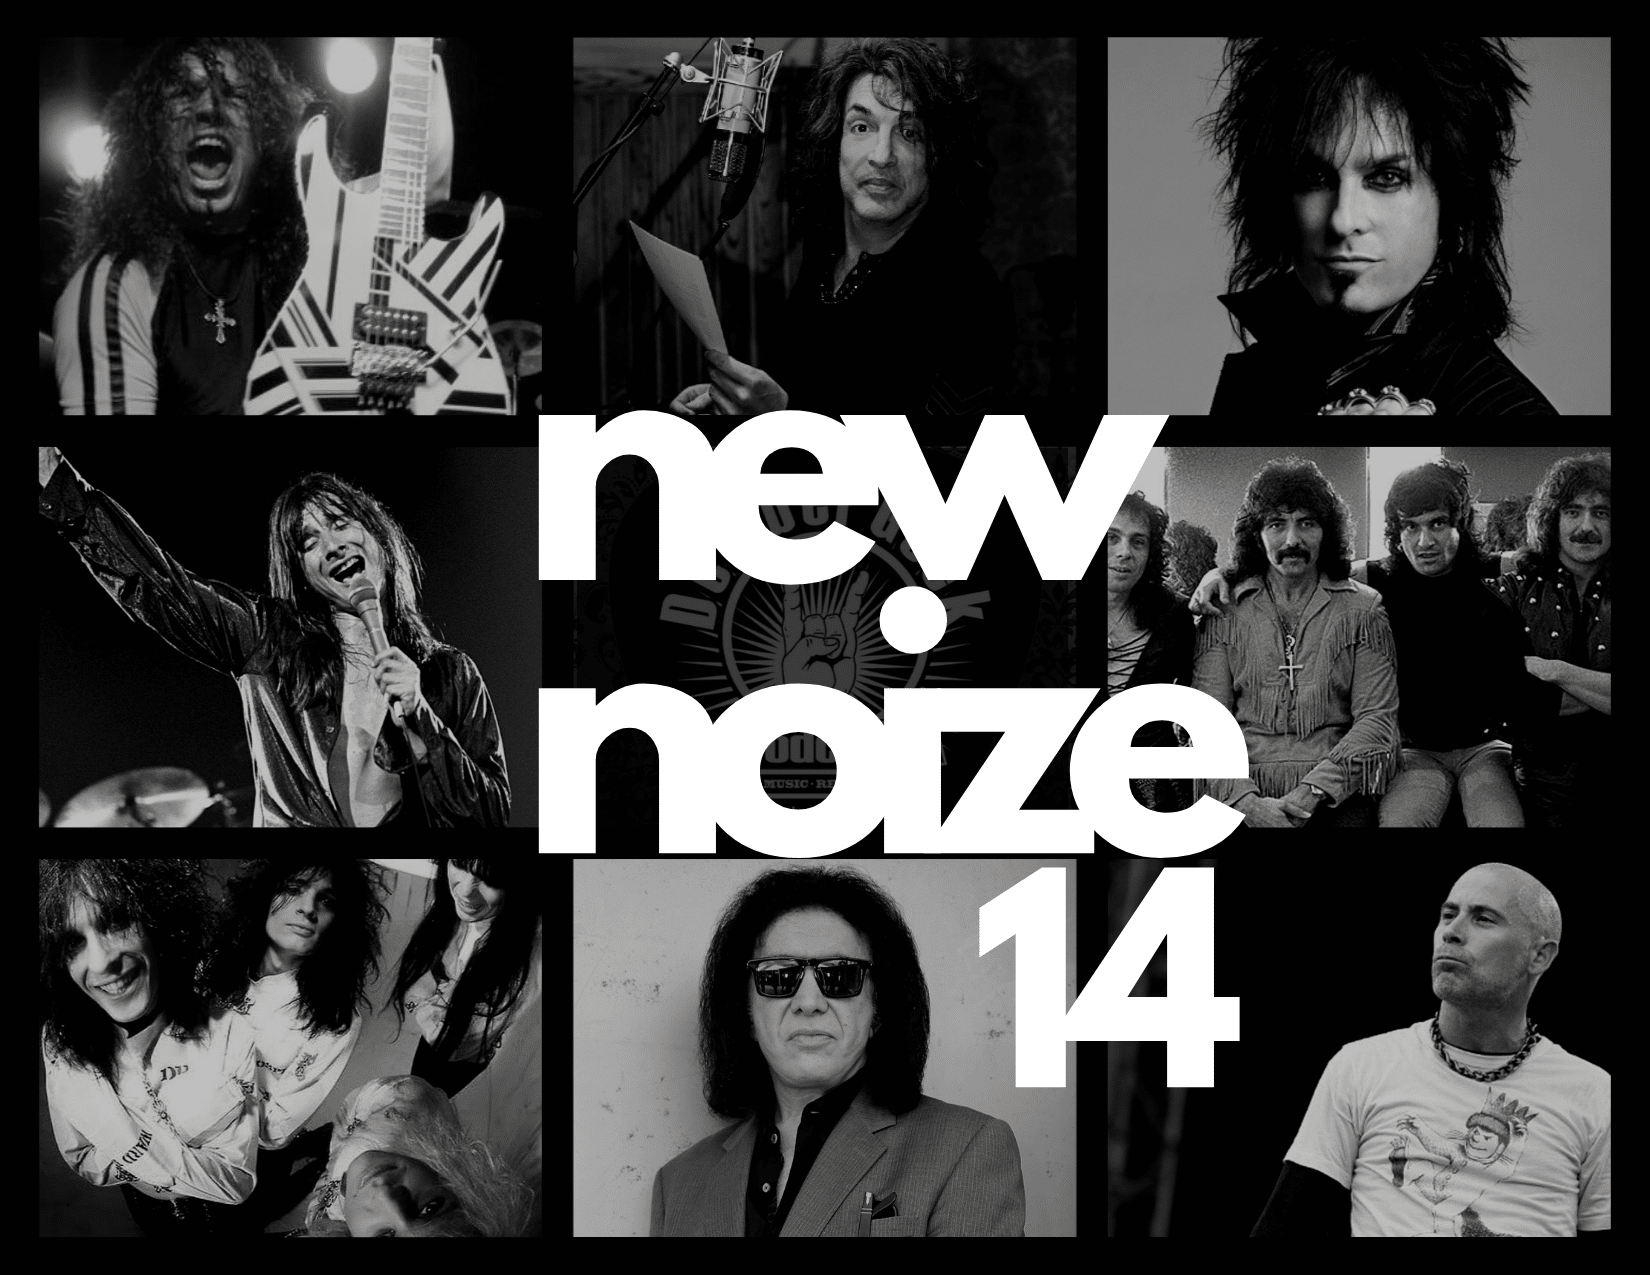 new noize, decibel geek, rock, metal, news, kiss, motley crue, anthrax, journey